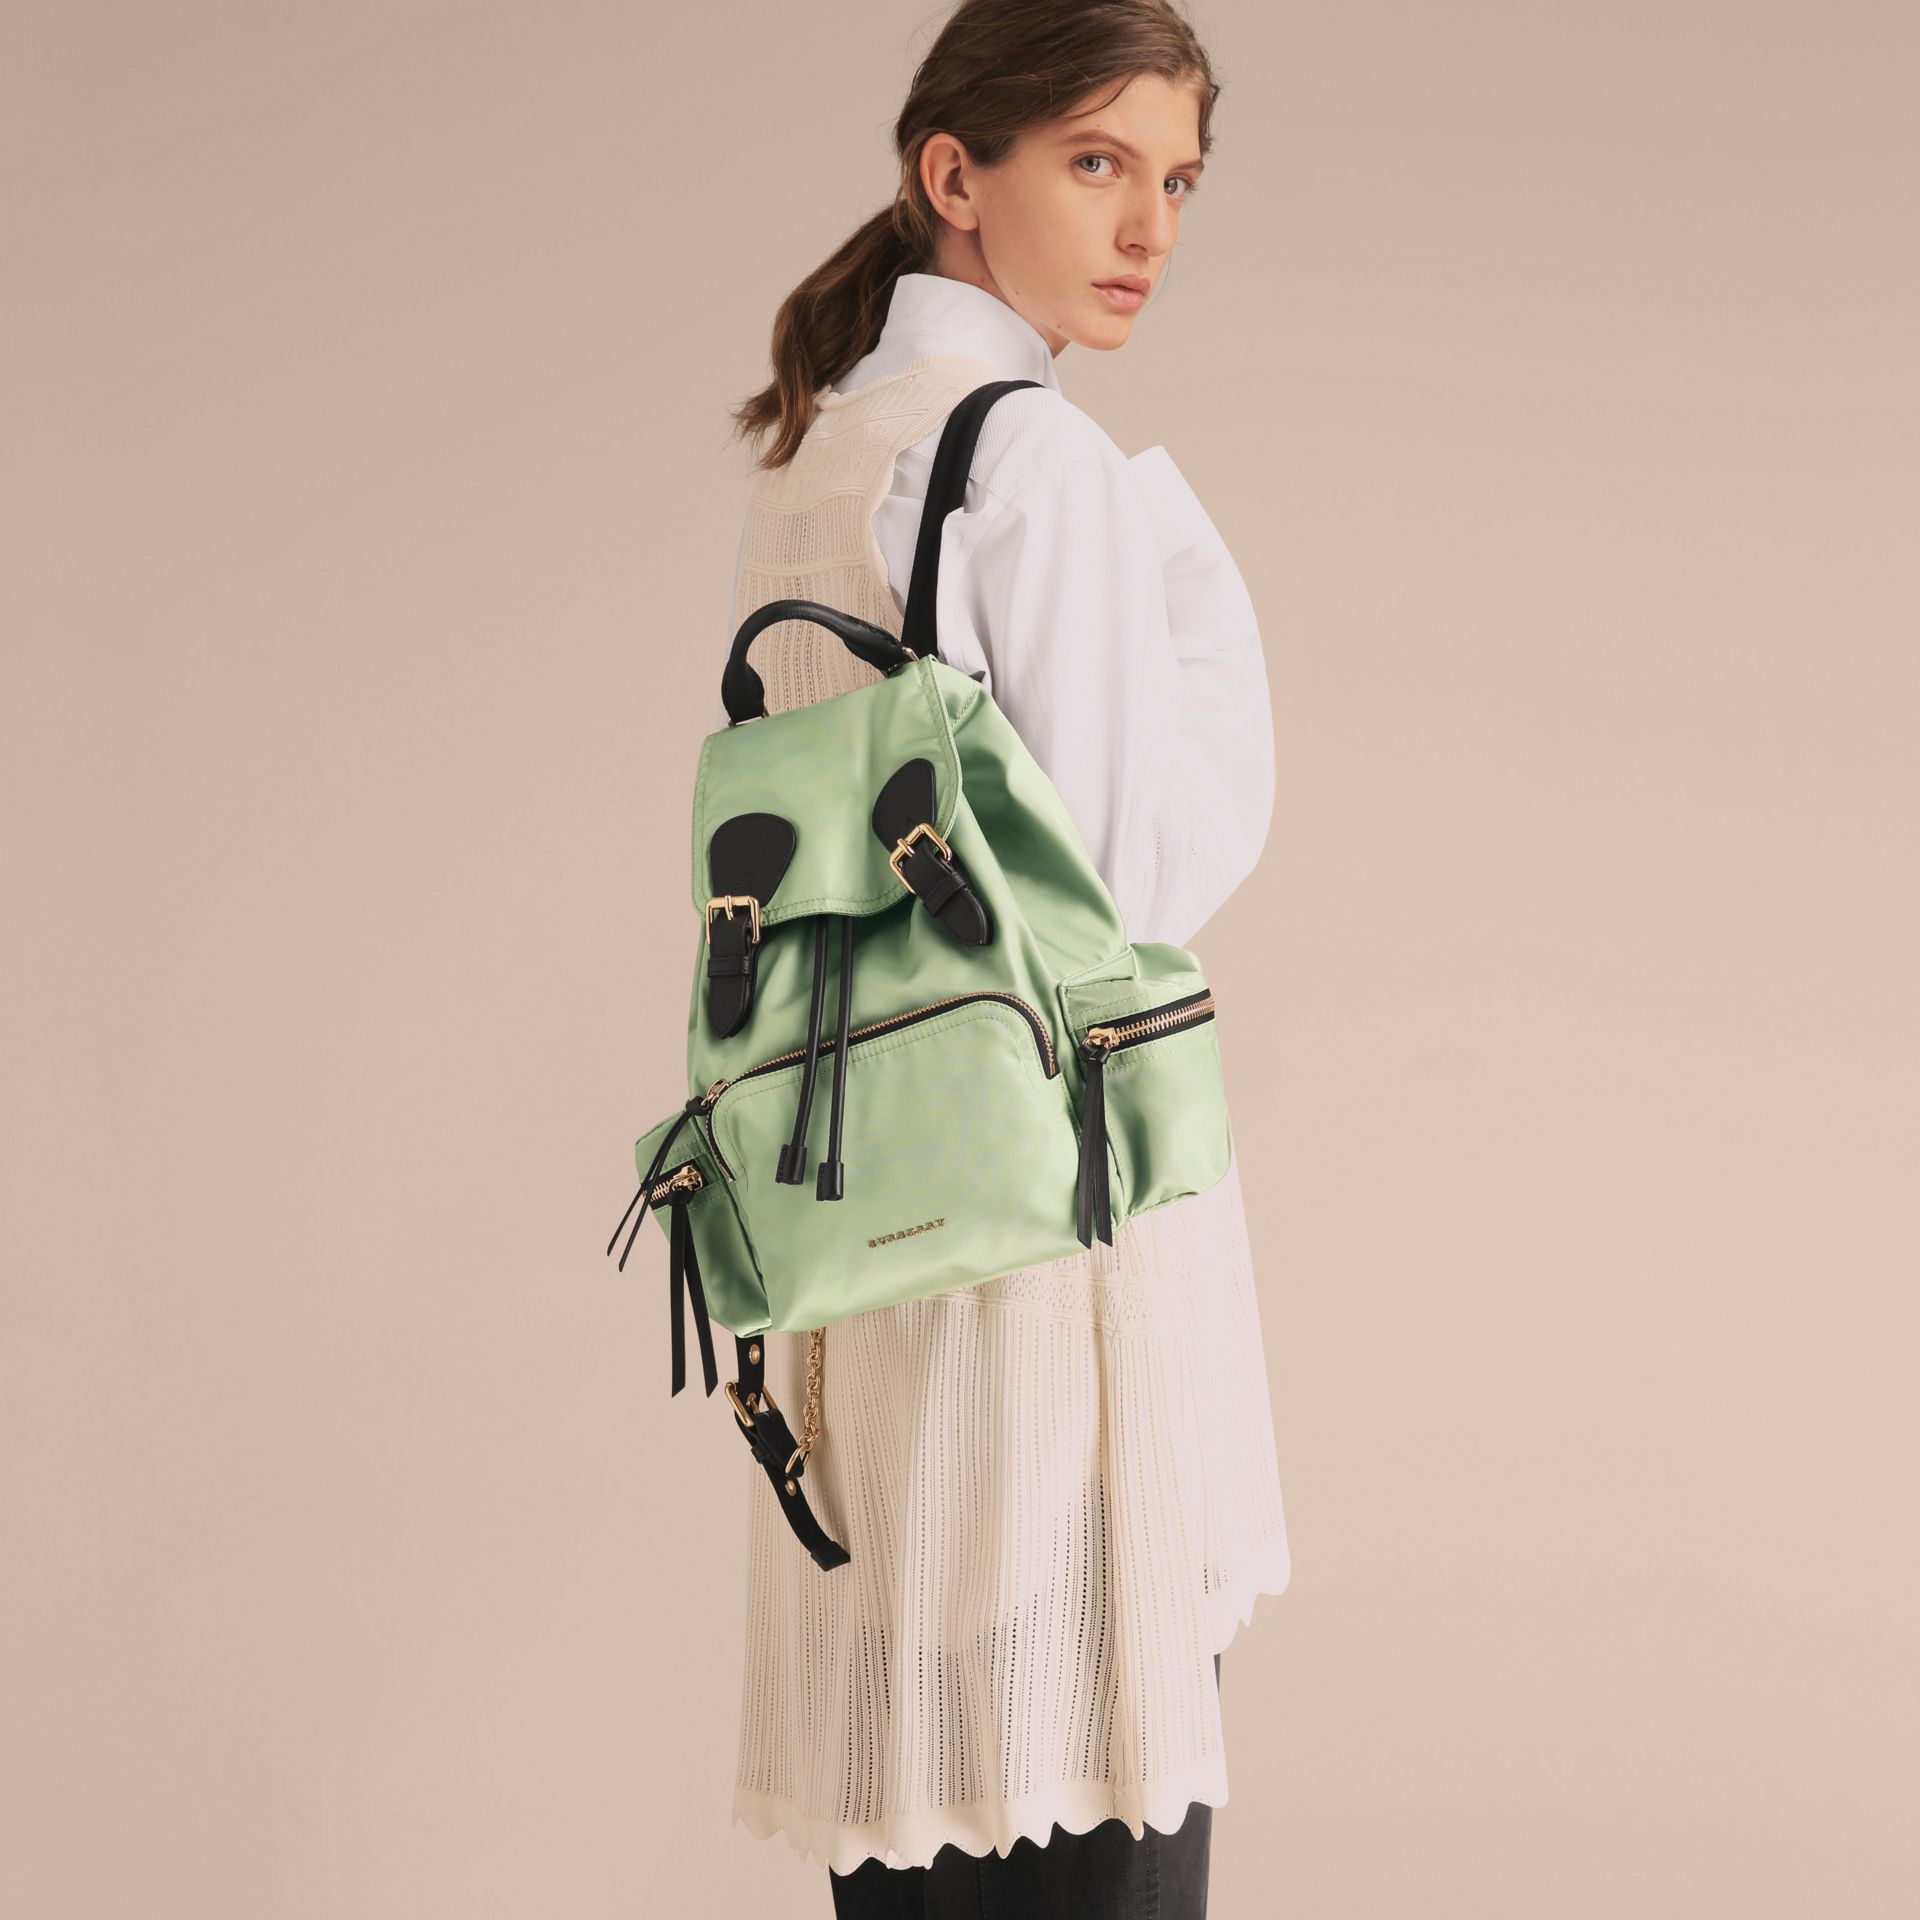 Sac The Rucksack medium en nylon technique et cuir (Vert Pomme) - Femme | Burberry - photo de la galerie 3